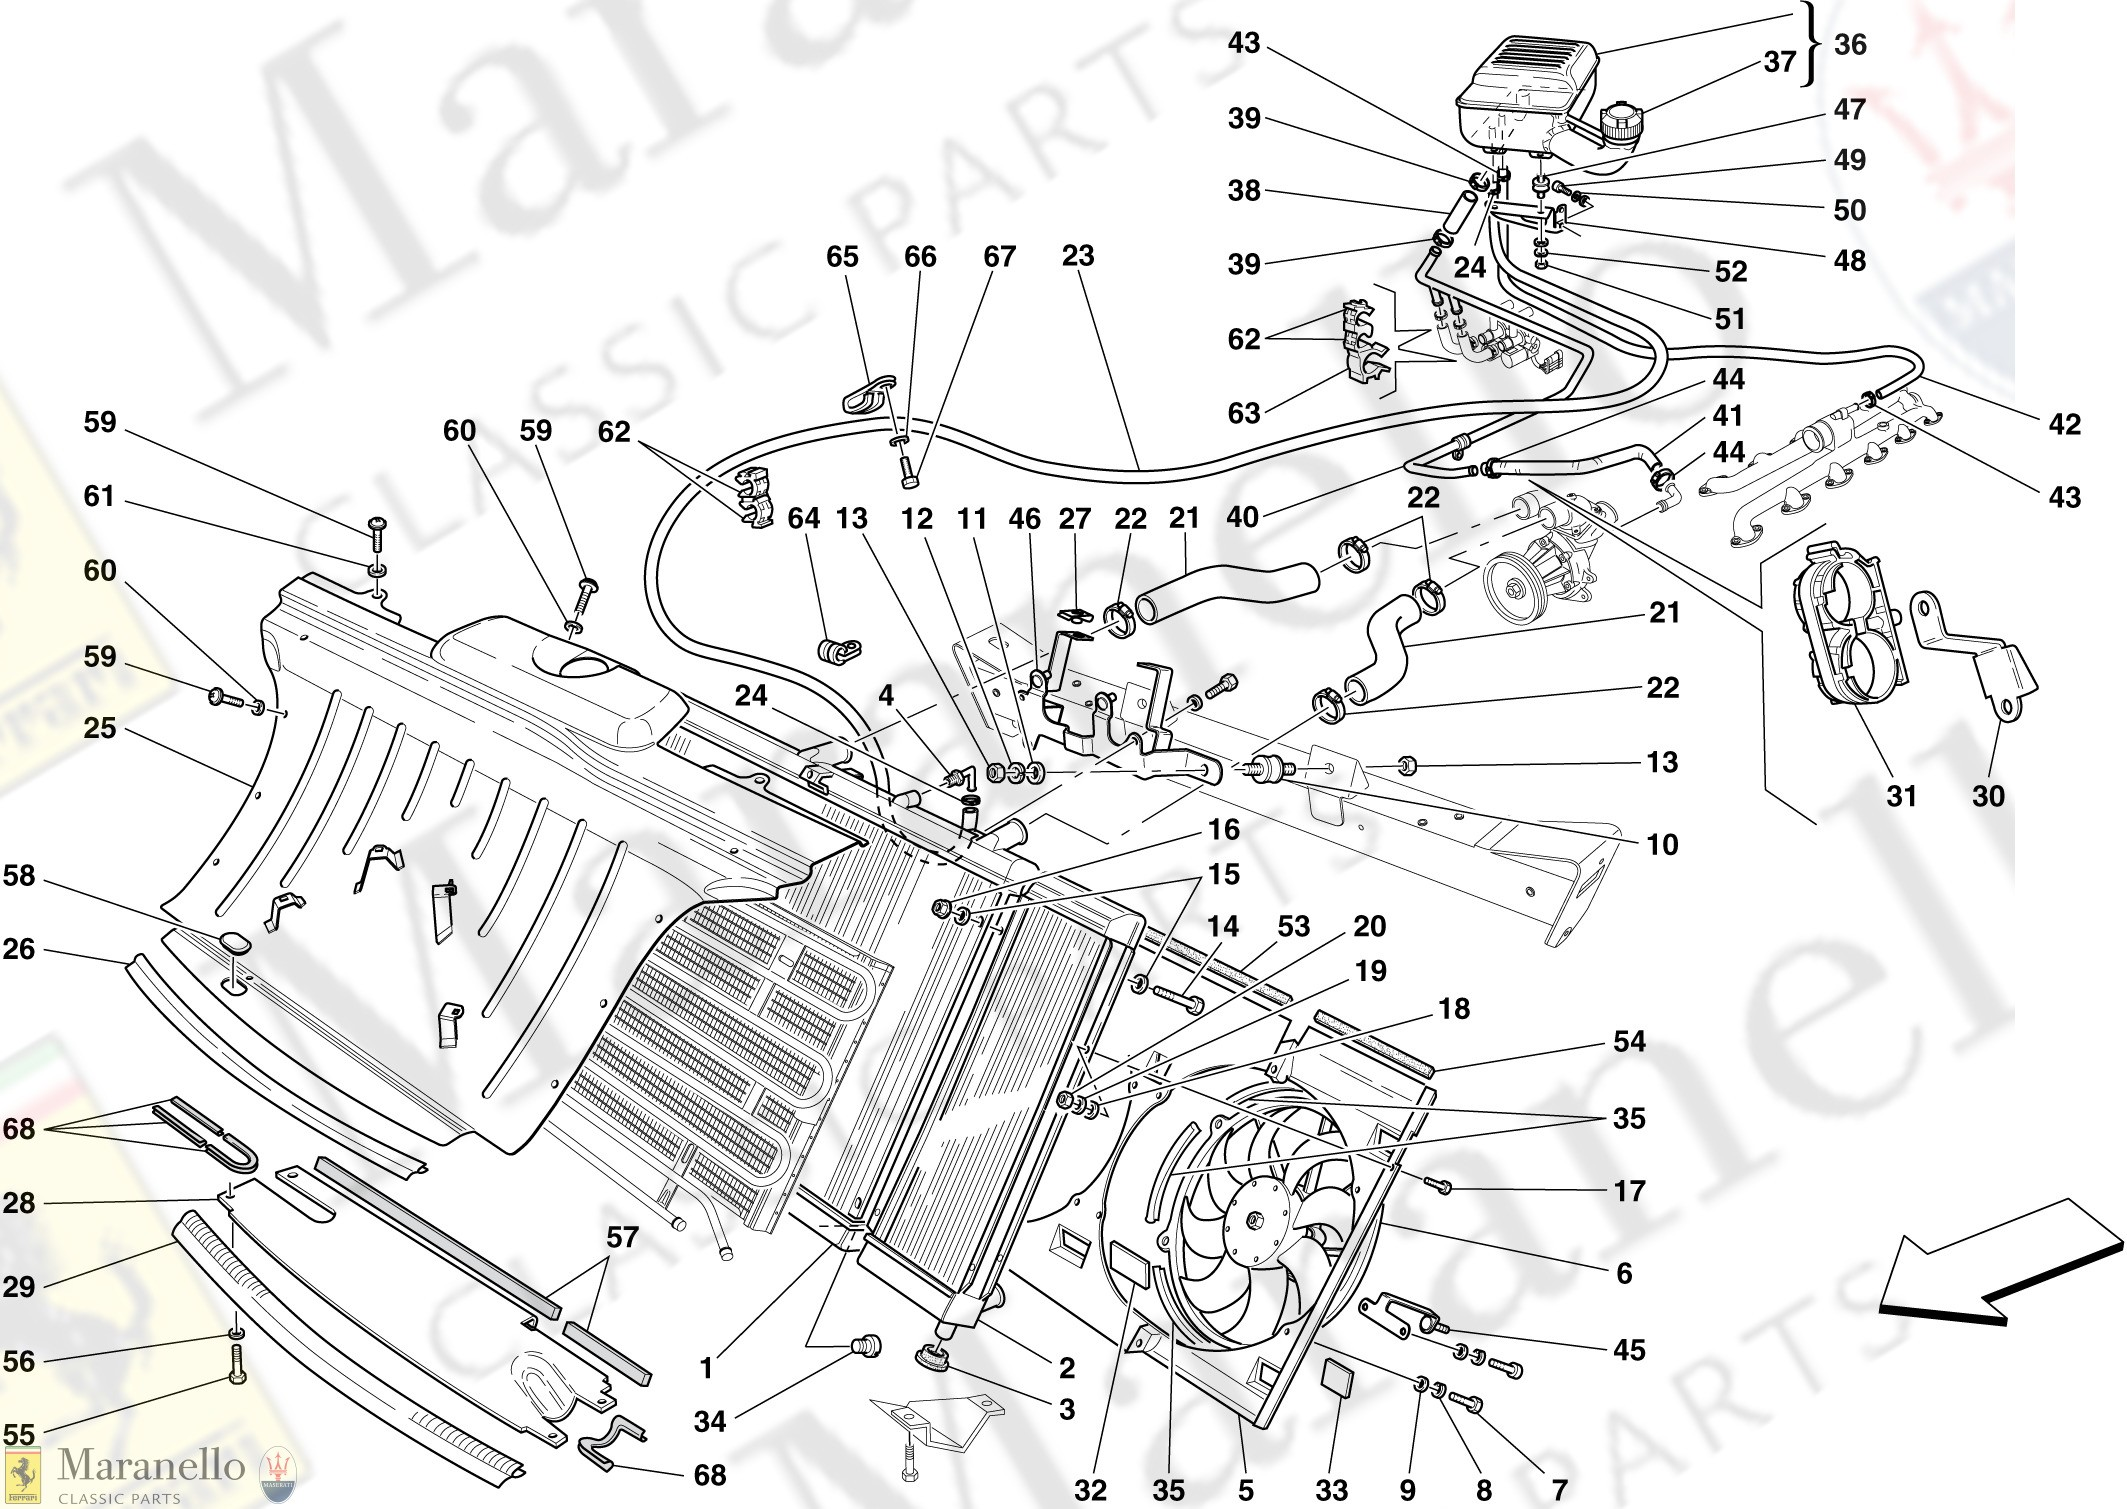 Radiator Parts Diagram 026 Cooling System Radiator and Header Tank Parts